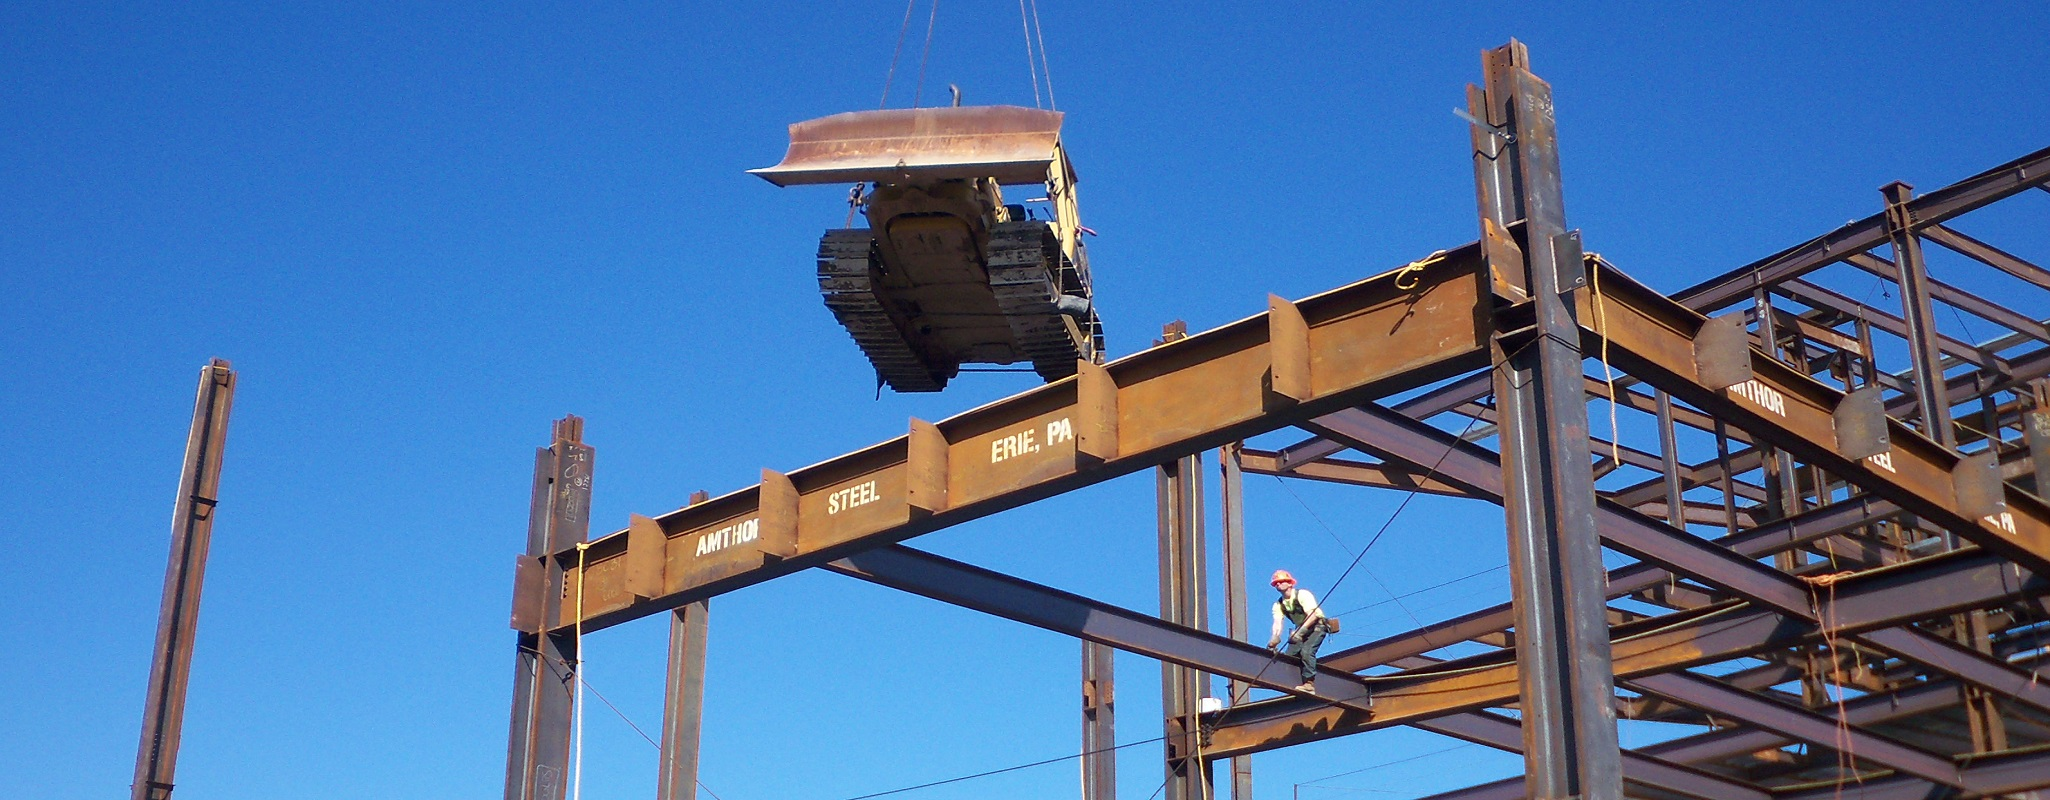 Local 433 Ironworkers - 0425